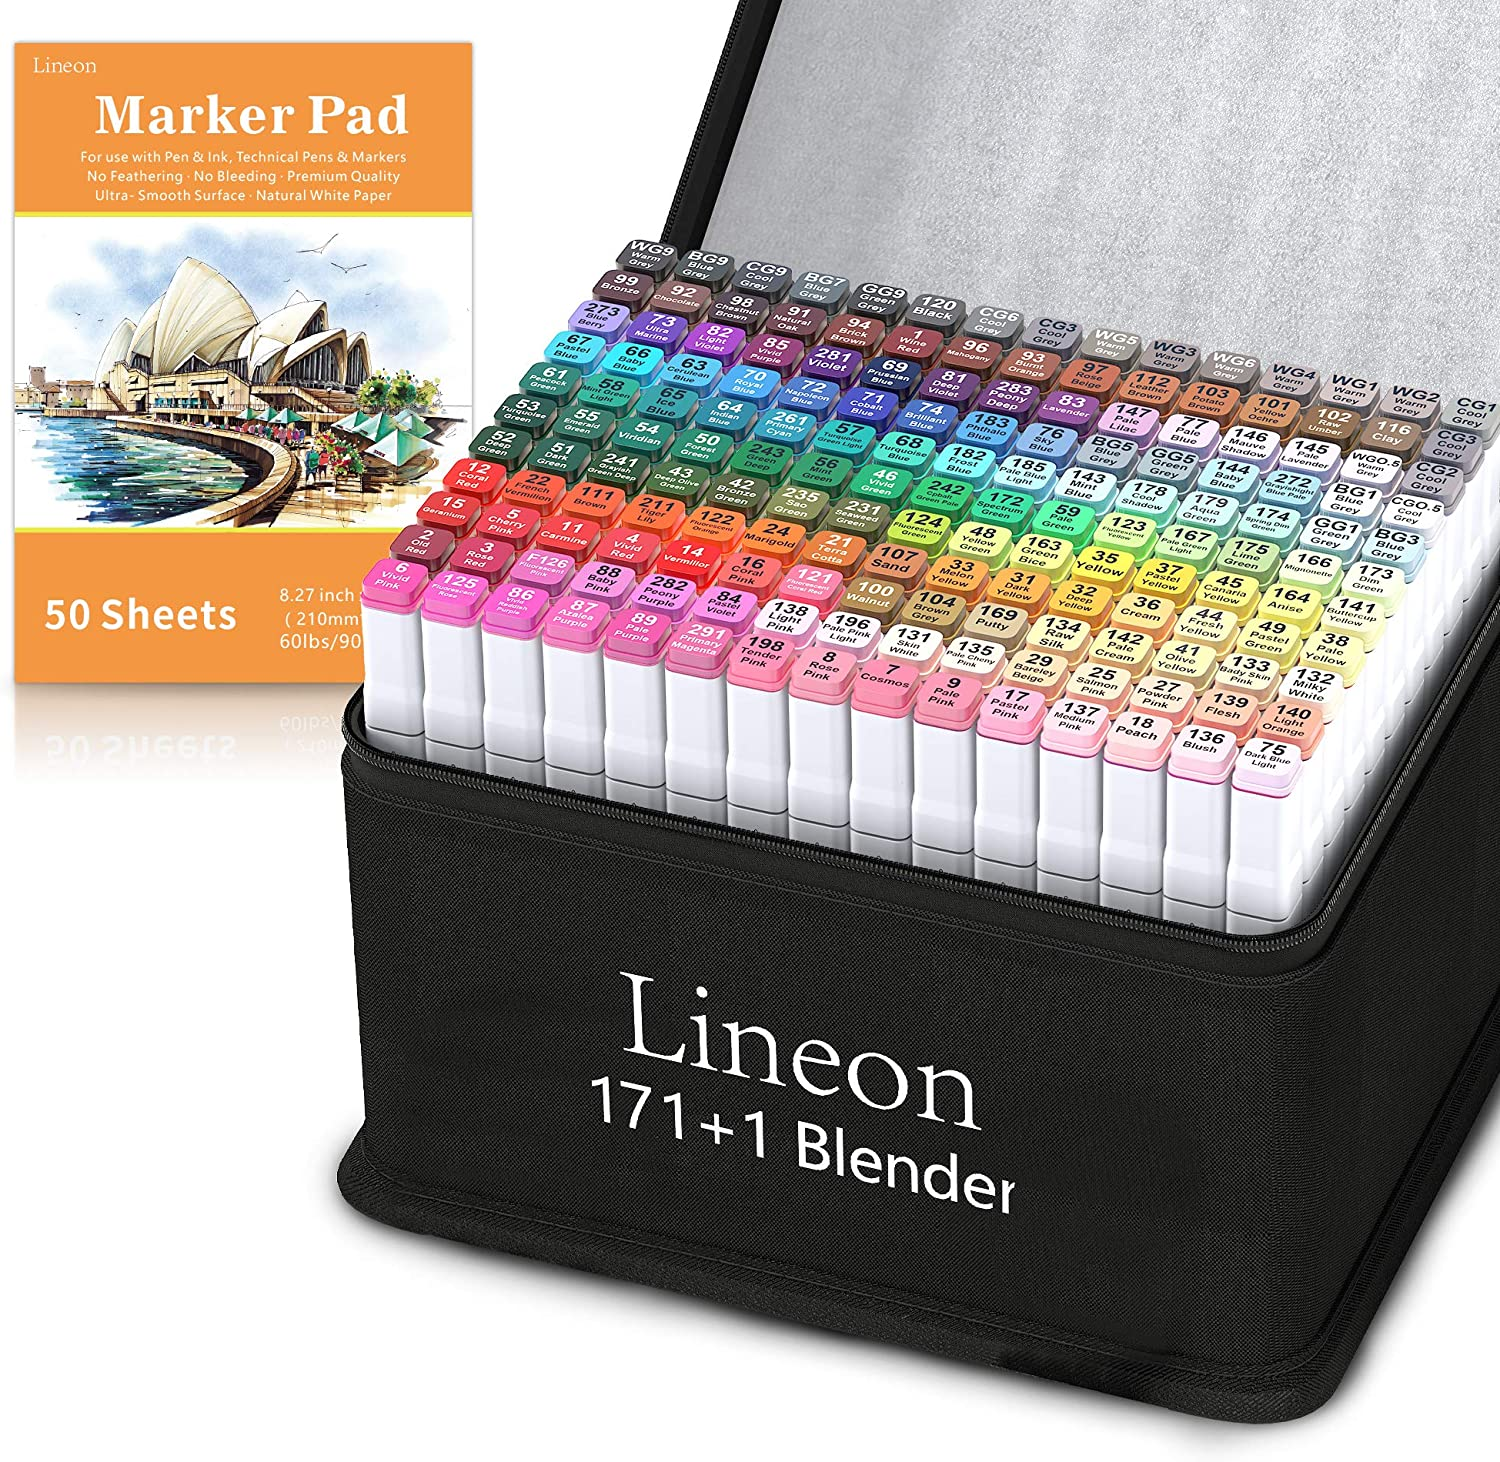 Lineon 172 Colors Alcohol Based Dual Tip Art Markers, 171+1 Blender Permanent Marker Pens Plus 1 Marker Pad 1 Case Perfect for Kids Adult Artist Coloring Books Drawing Sketching and Card Making